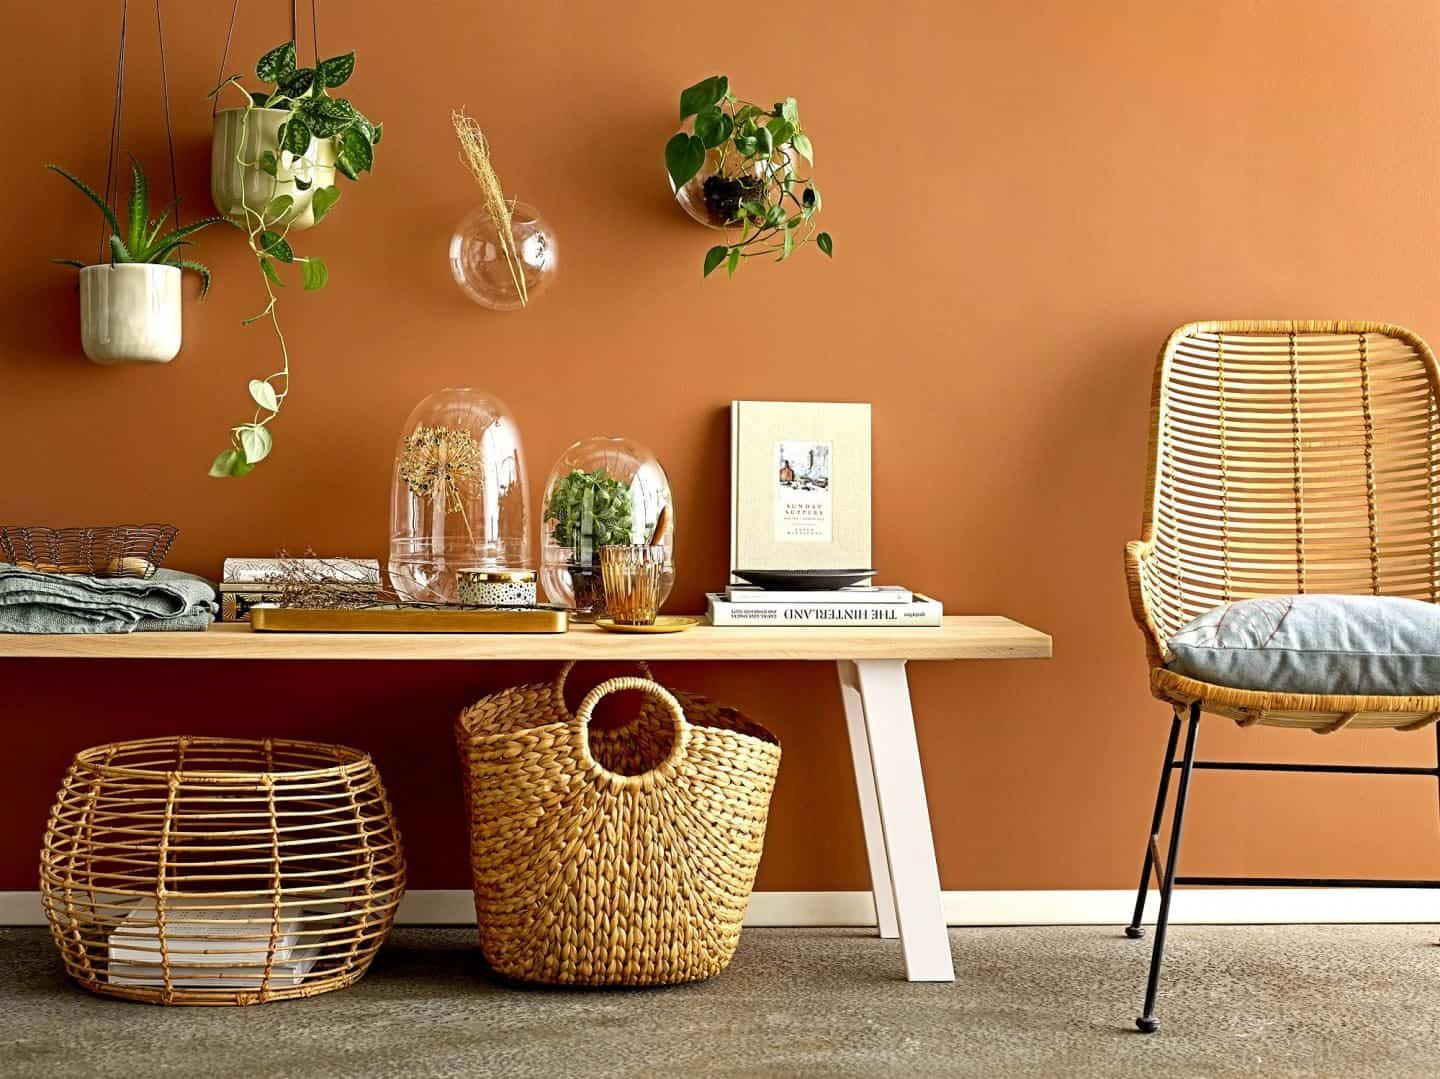 Shekåbba The Danish Home stocks a range of Danish homewares. A coffee table, baskets and rattan chair against a terracotta wall dotted with hanging plants